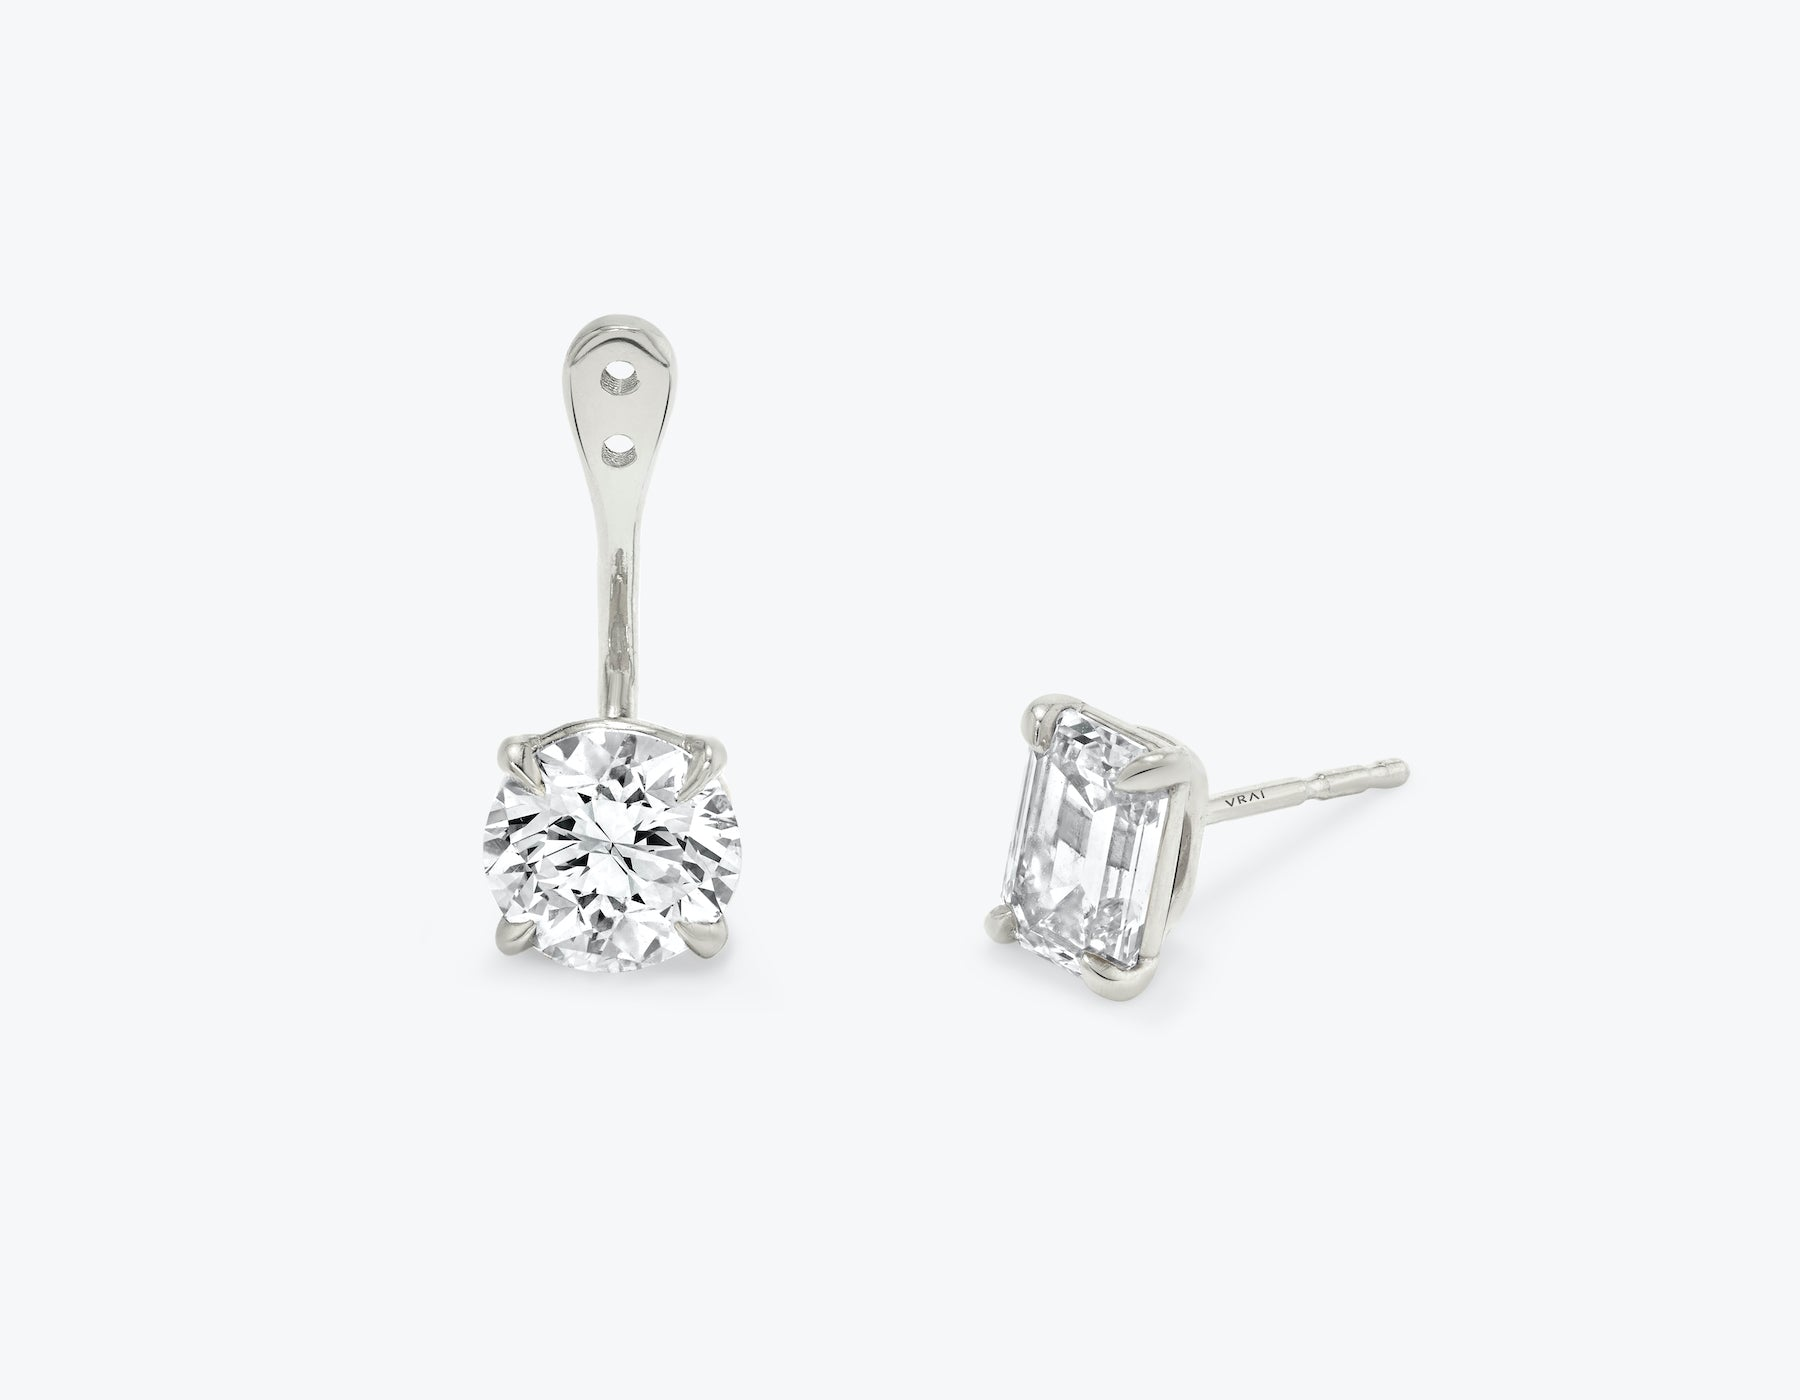 Vrai solitaire round brilliant diamond drop ear jackets made in 14k solid gold with sustainably created diamonds with round solitaire diamond stud, 14K White Gold